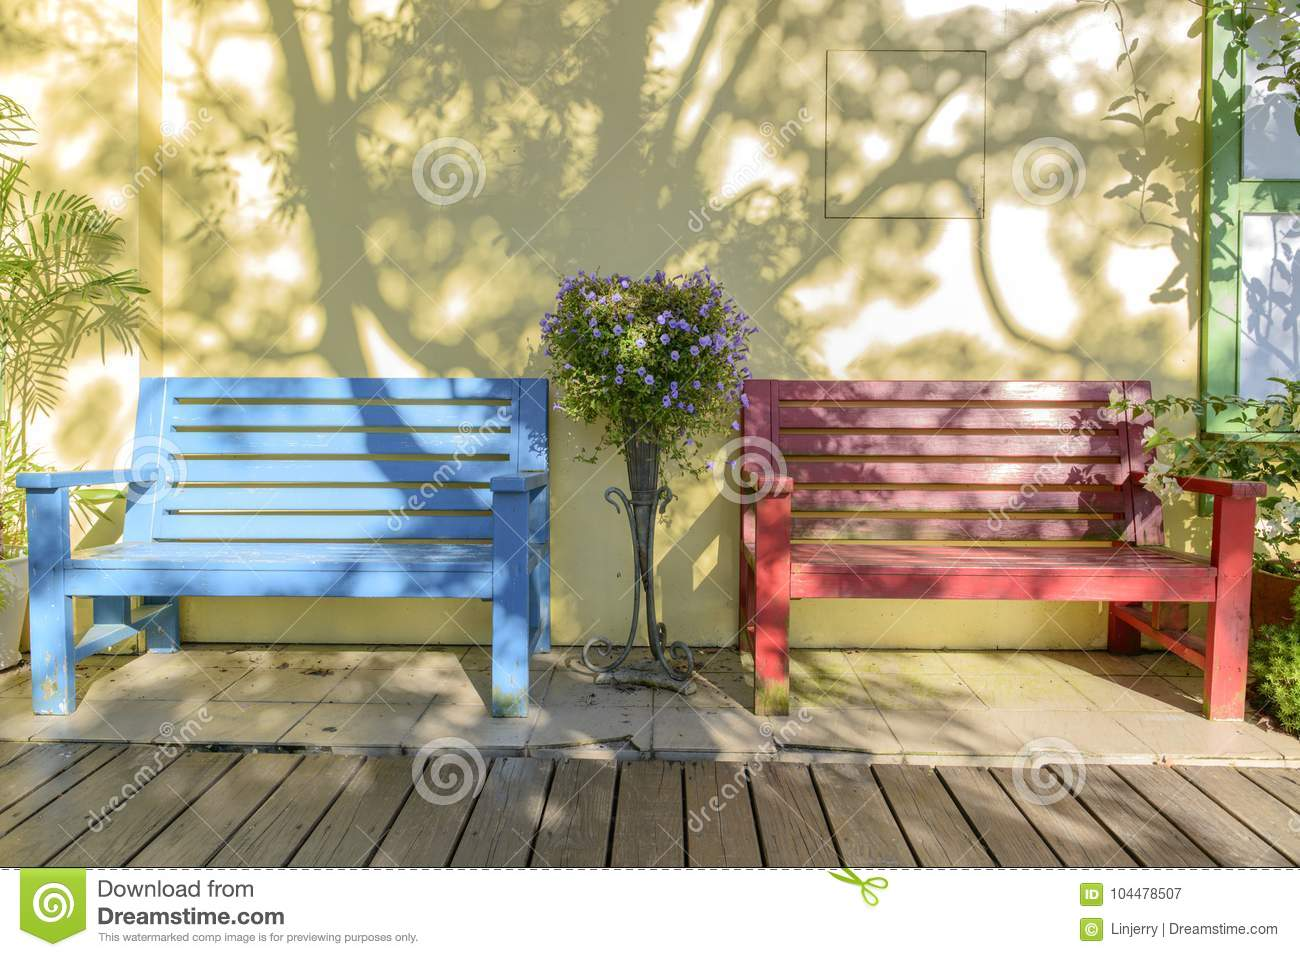 Surprising Vintage Bench And Pansies Flowers Stock Image Image Of Caraccident5 Cool Chair Designs And Ideas Caraccident5Info